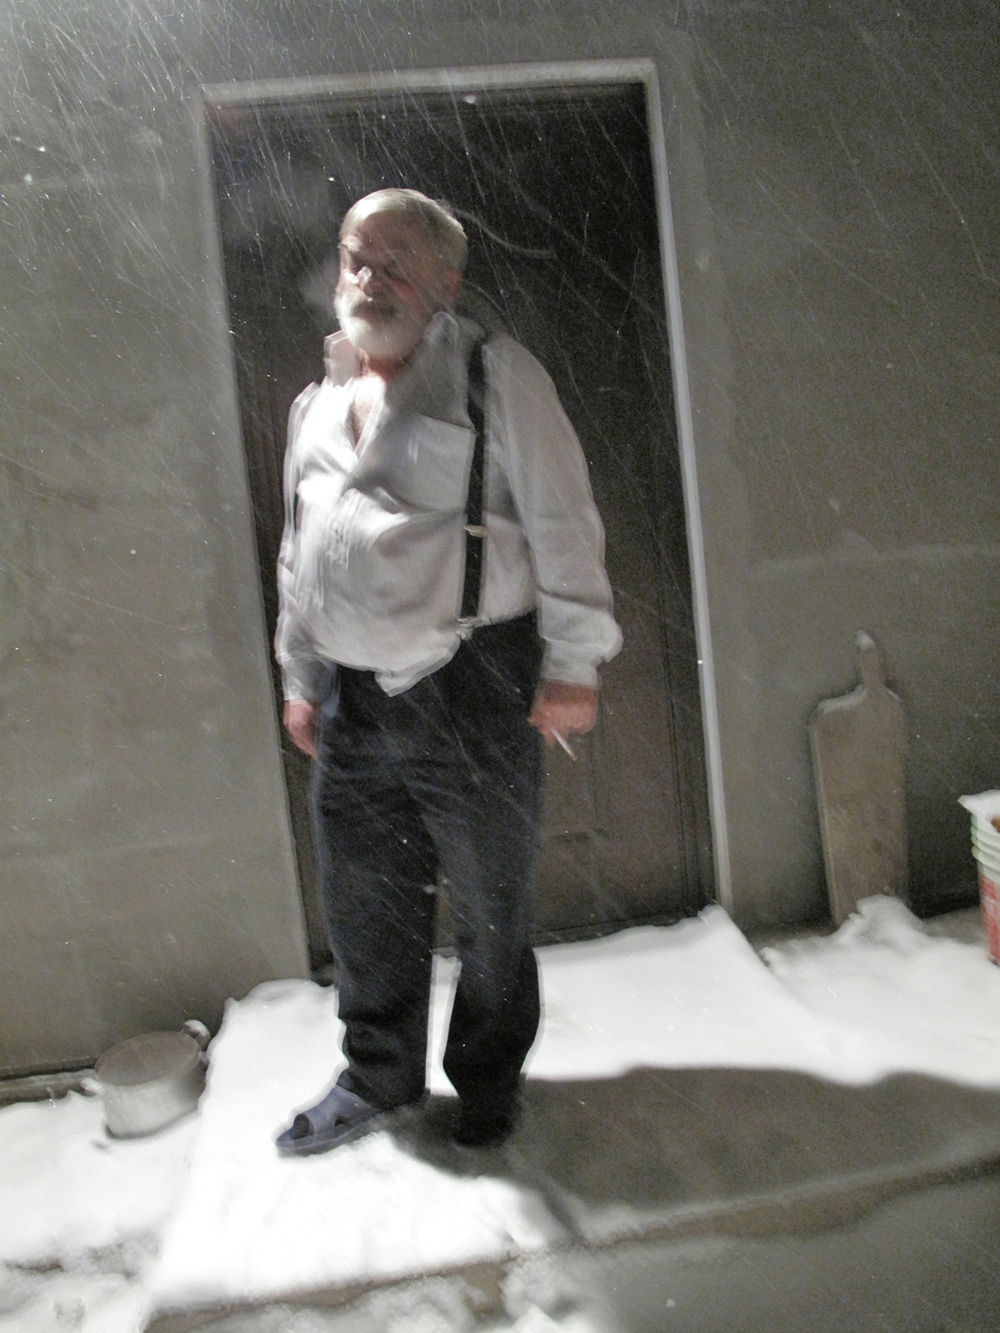 Yakov in Winter, Drohobych, Ukraine 2009